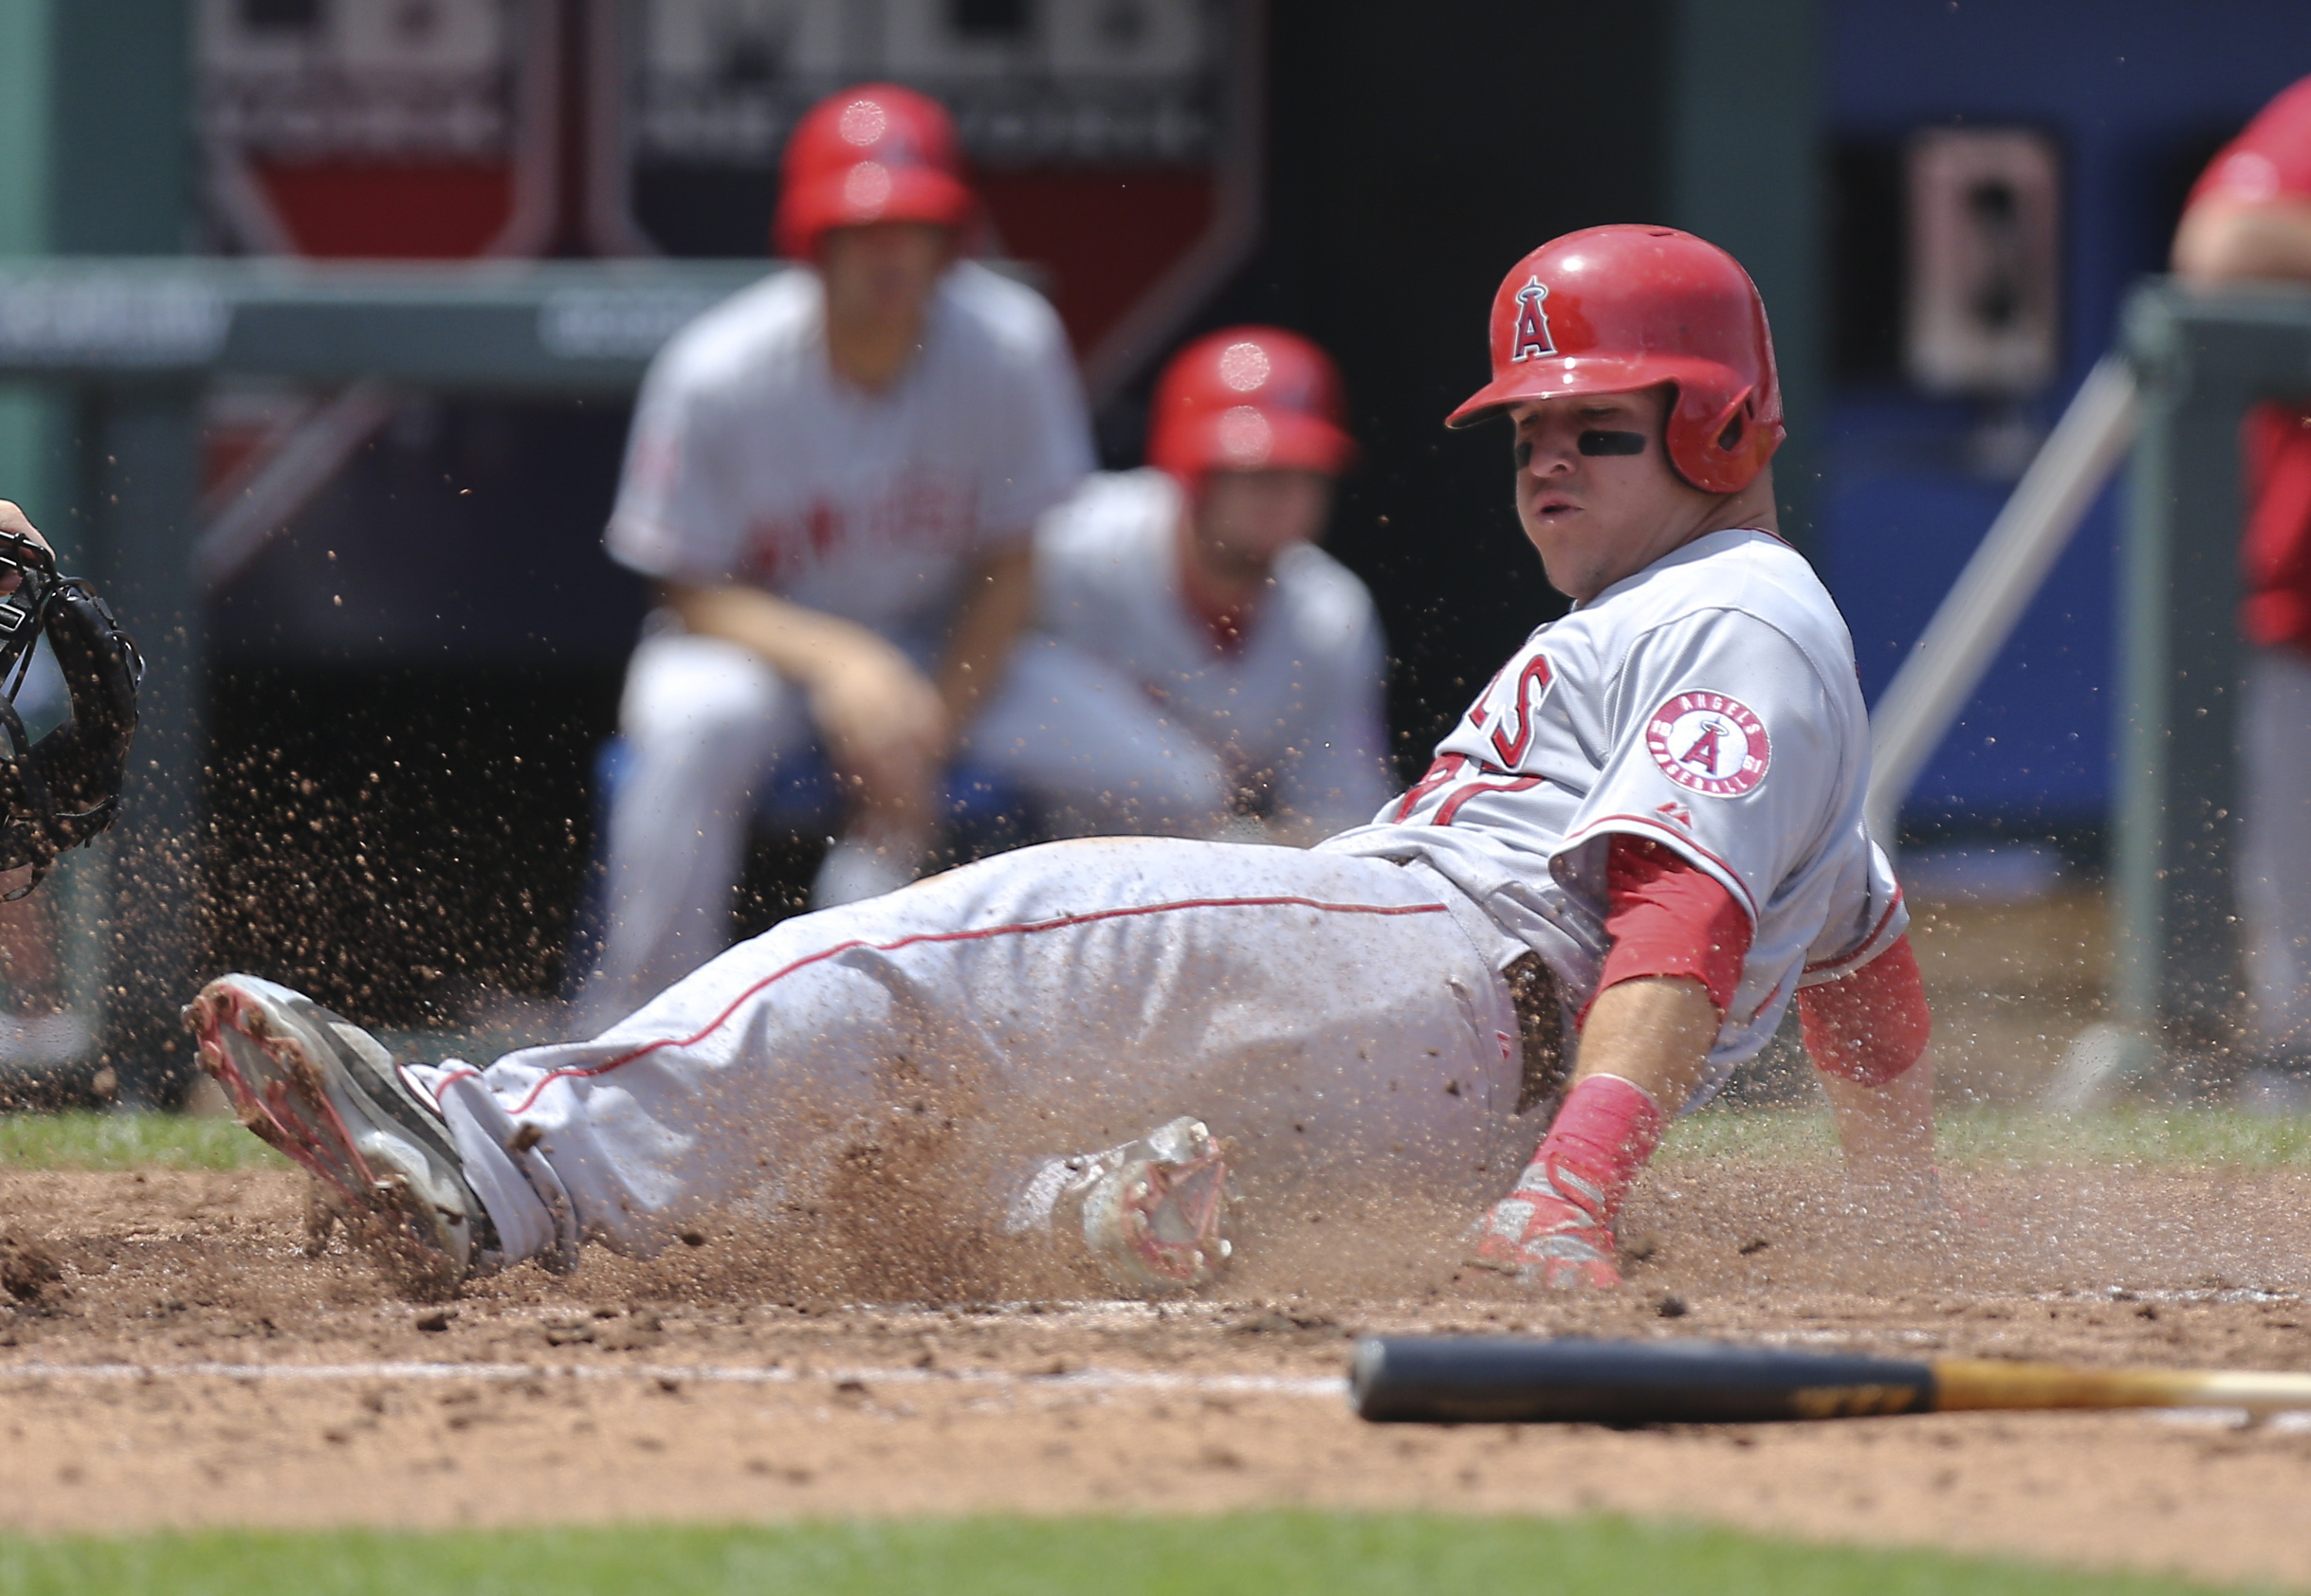 Sophomore slump? Mike Trout hasn't showed any signs of it this season. (Getty Images)